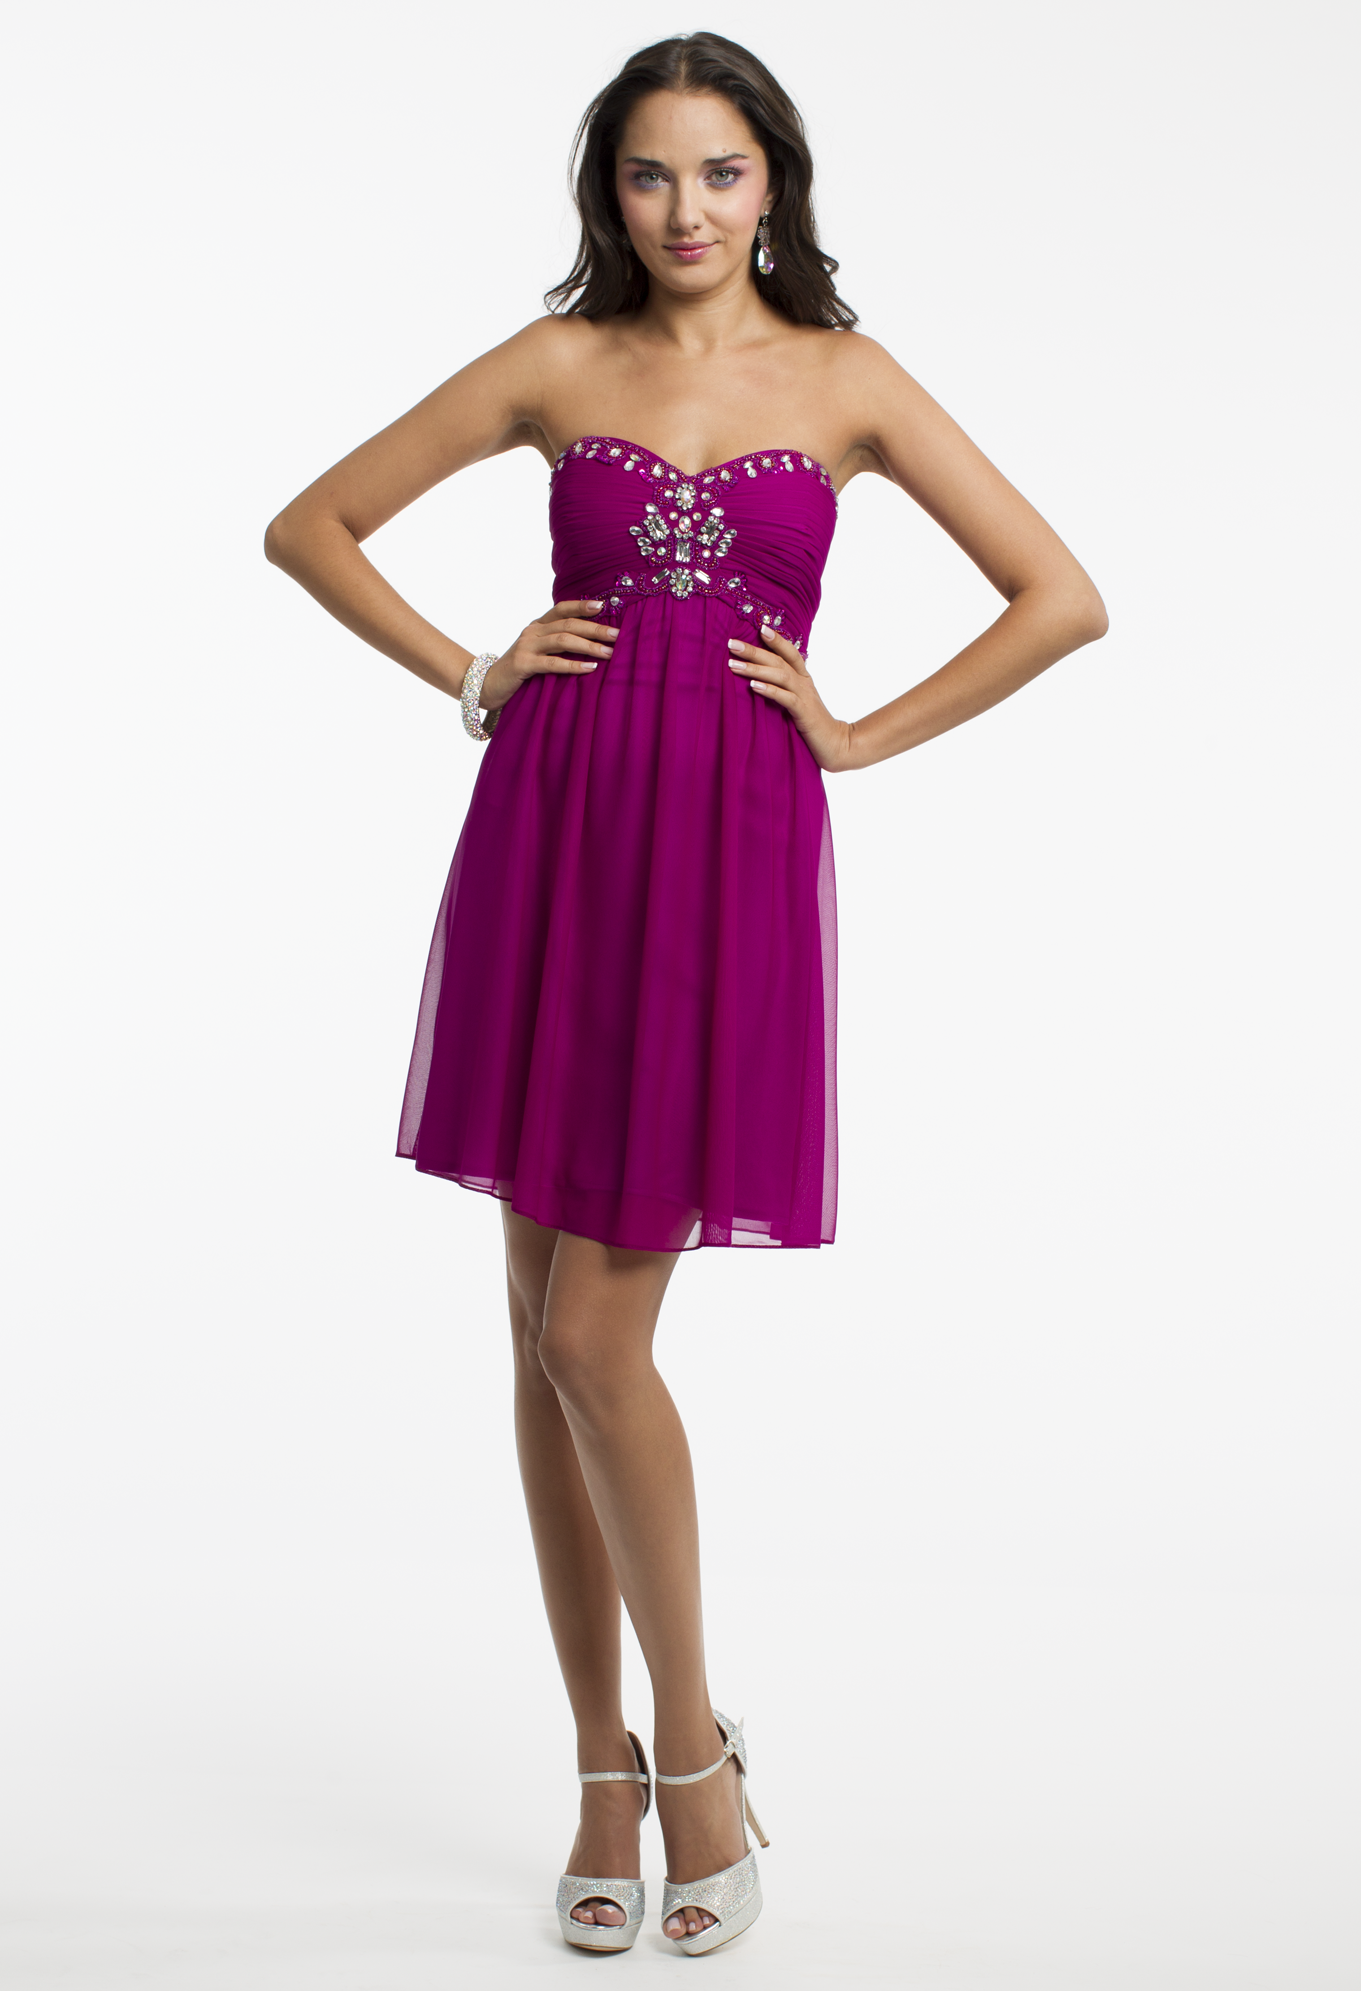 Strapless Beaded Short Dress by Camille La Vie & Group USA | Prom ...